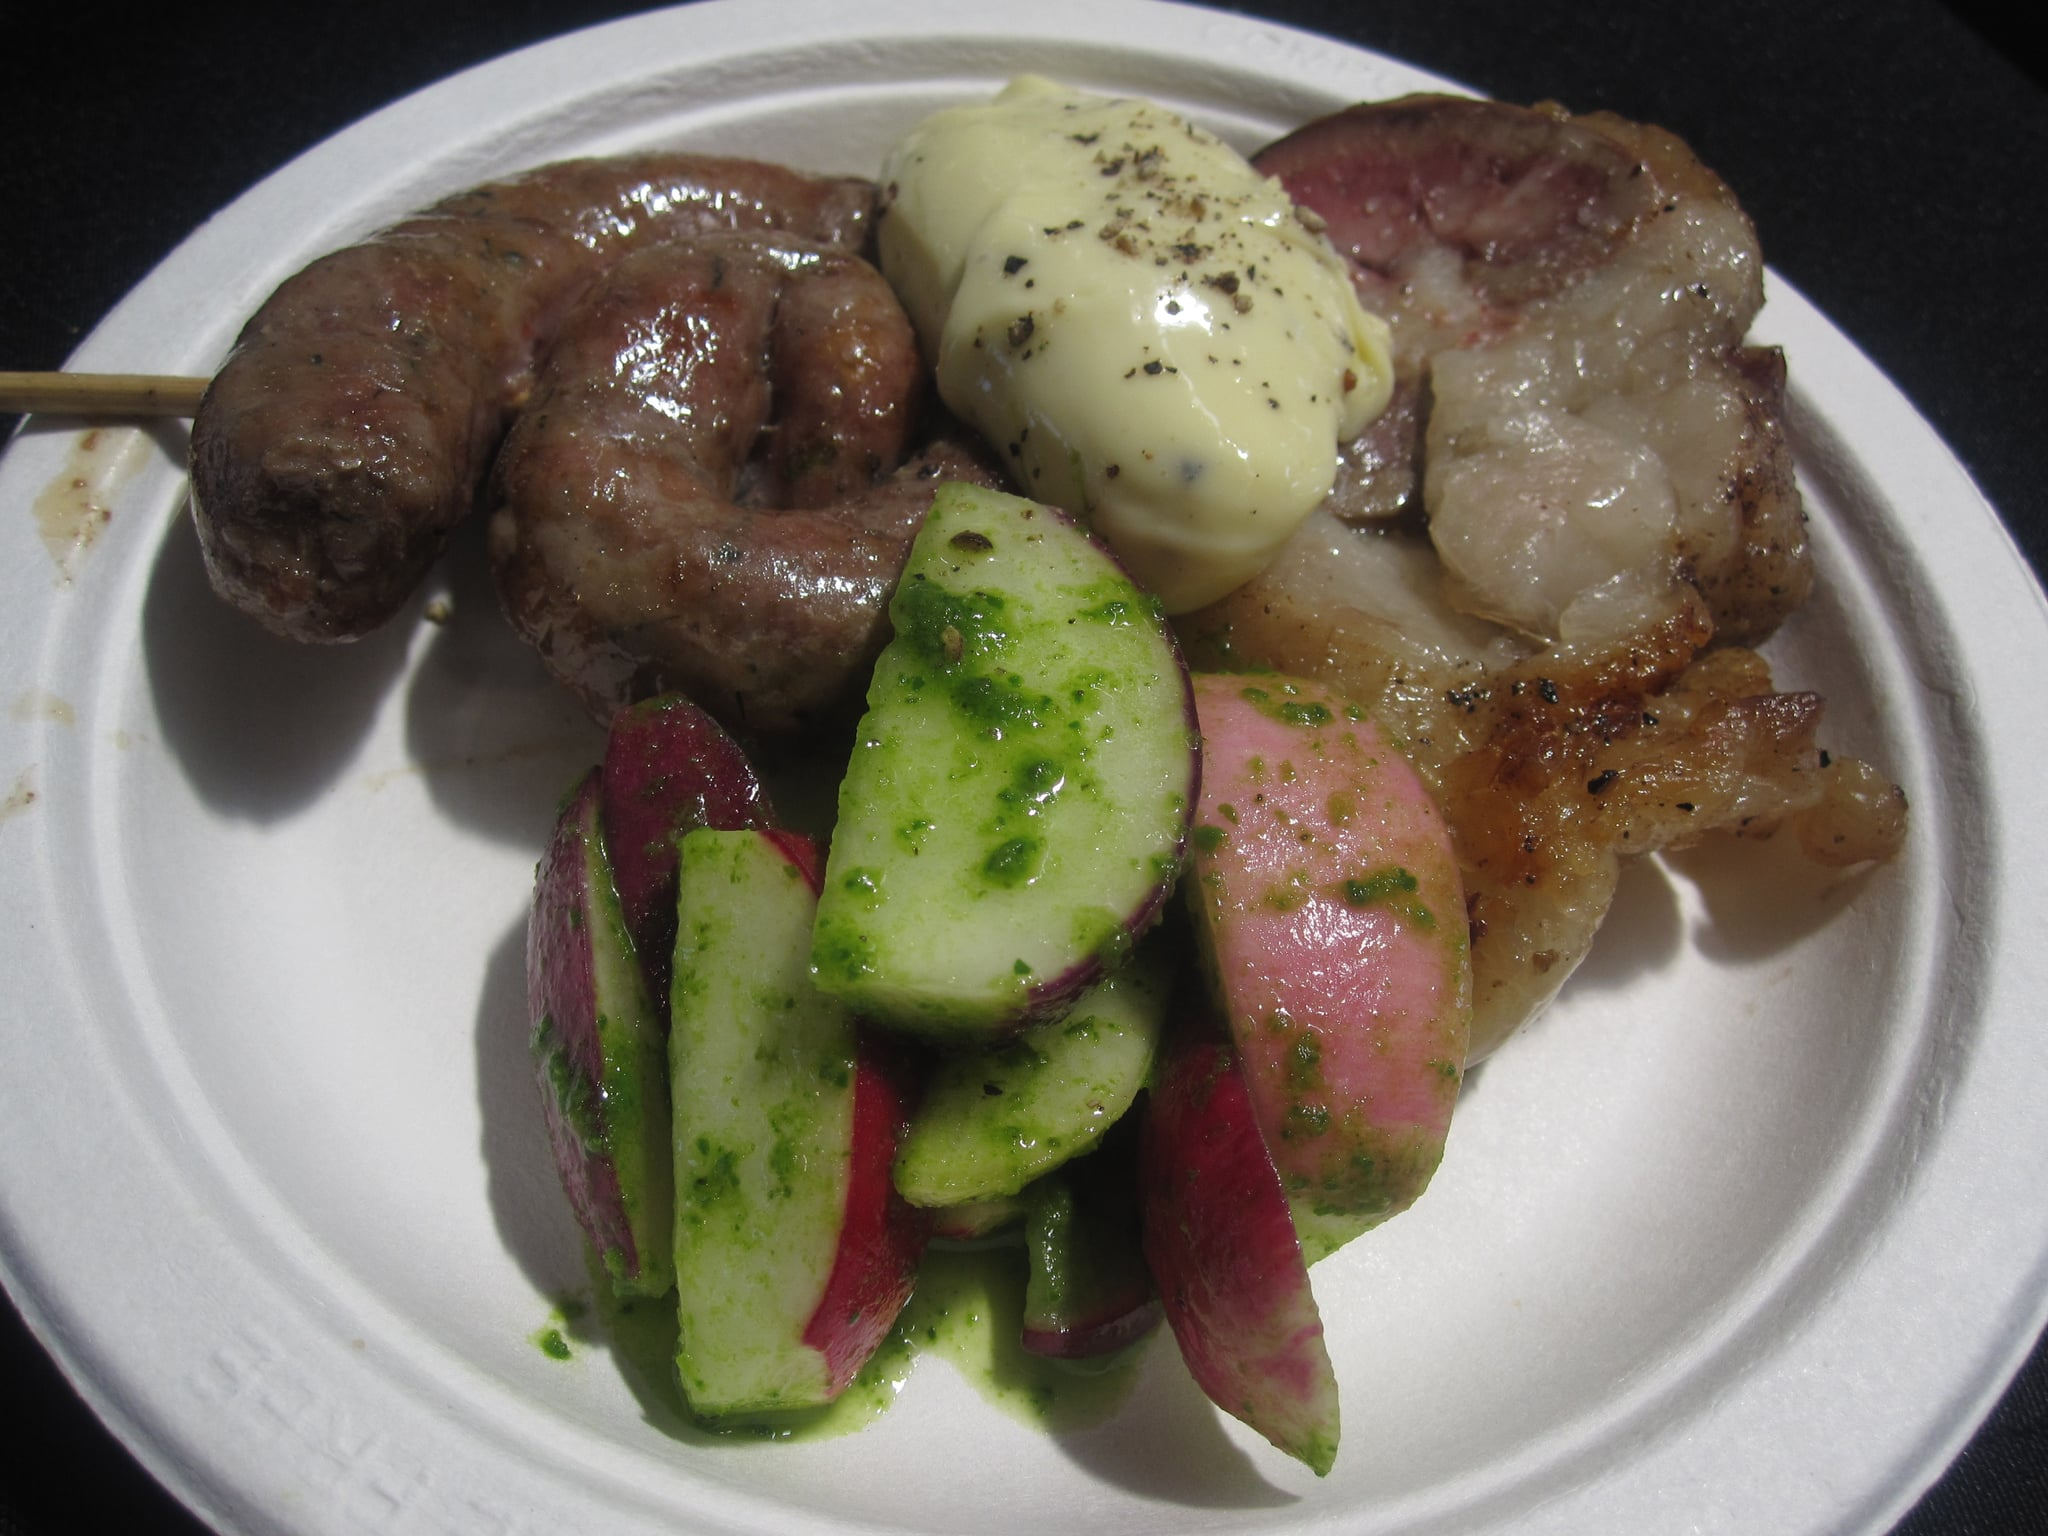 The most out-there preparation was this lamb sausage and lamb kidney dish. It was served with minted radishes and a hay-infused aioli.